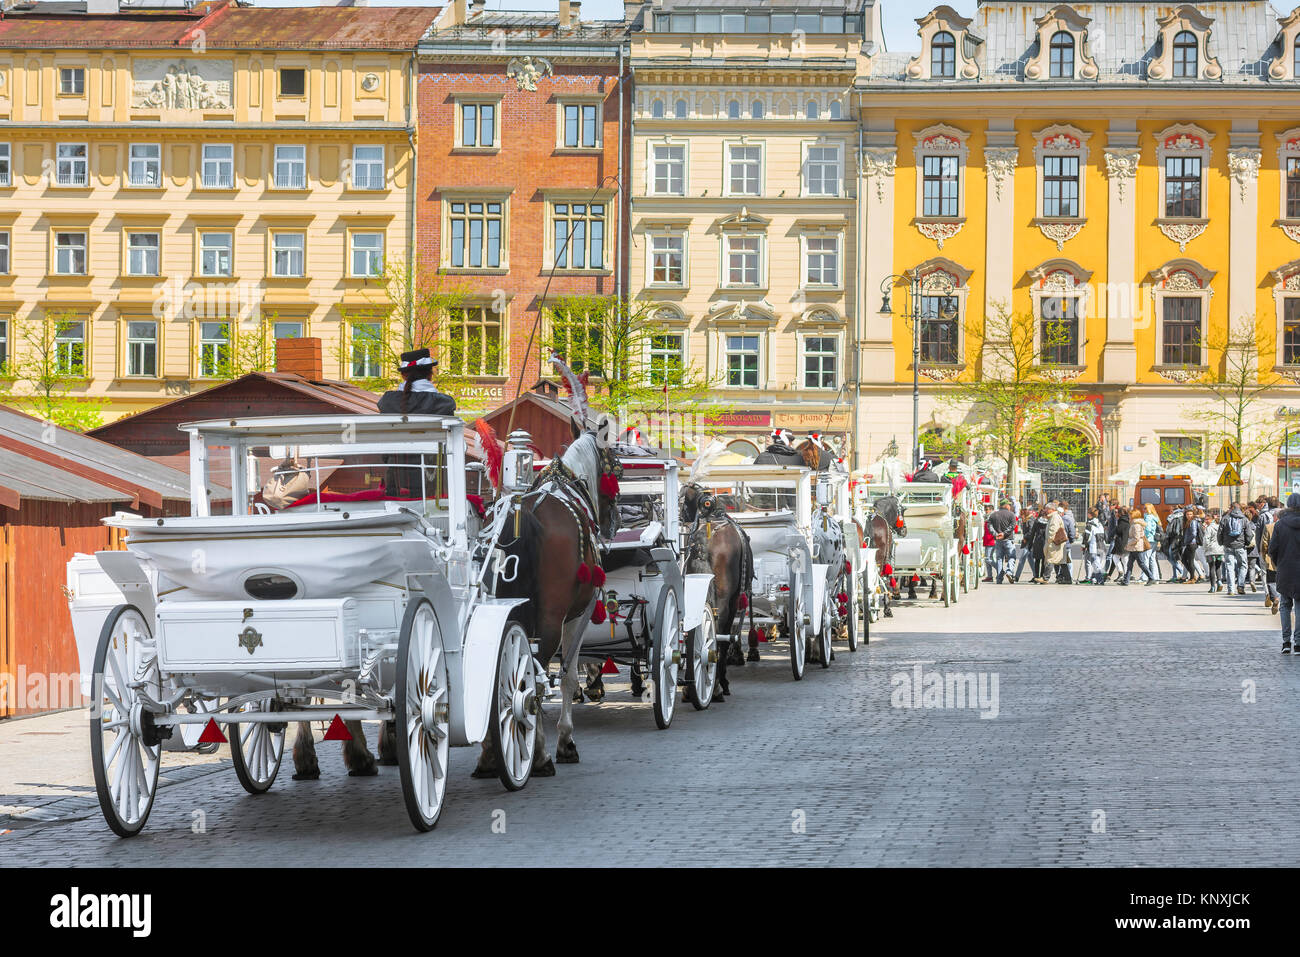 Horse-drawn carriages available for tours of the city of Krakow line up in the city's Market Square, Poland. - Stock Image